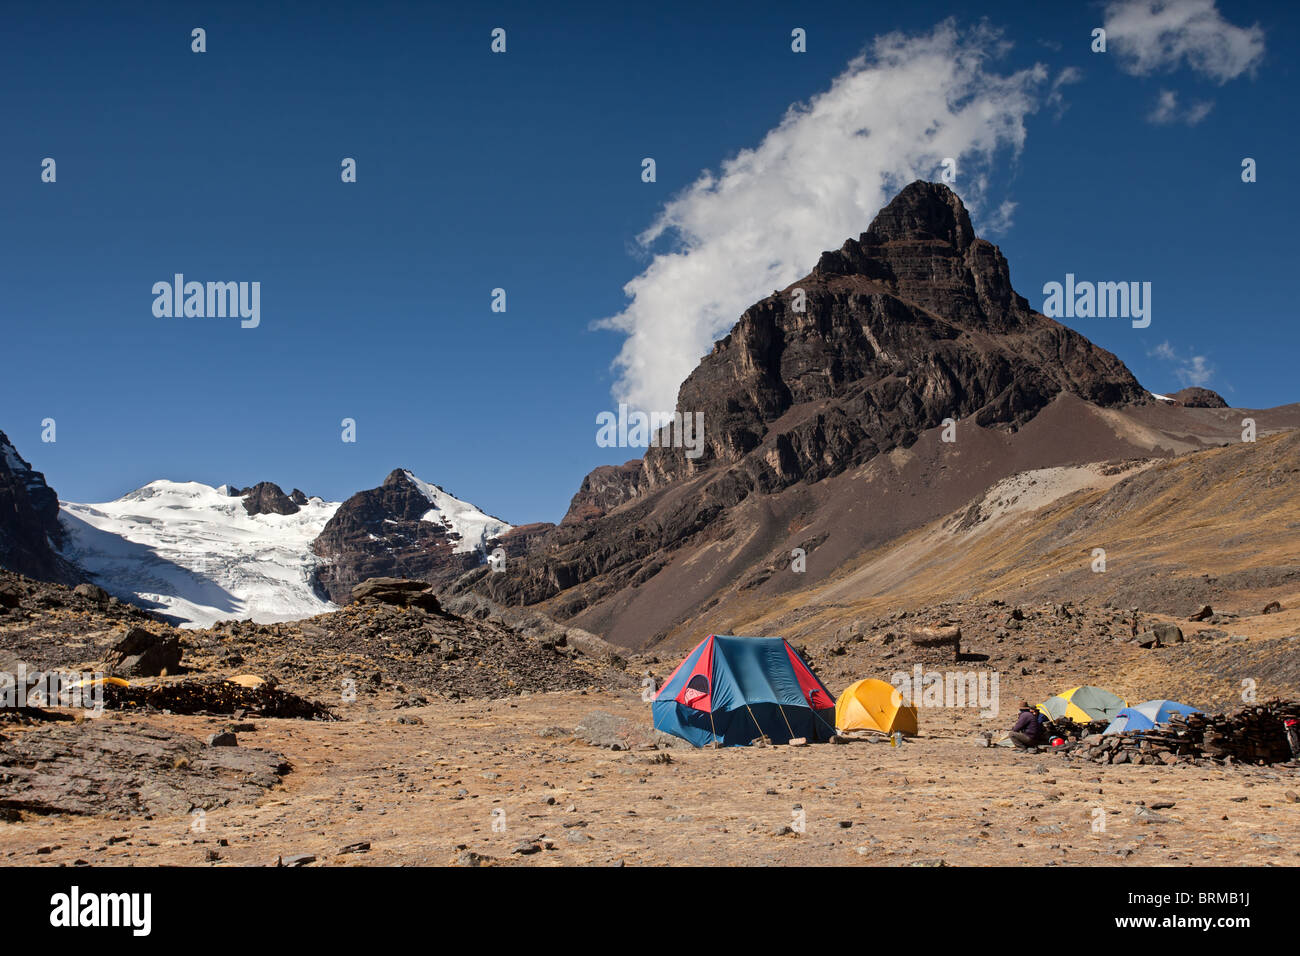 Cordillera Real: Condoriri Mountains: Condoriri Base Camp with Tents - Stock Image